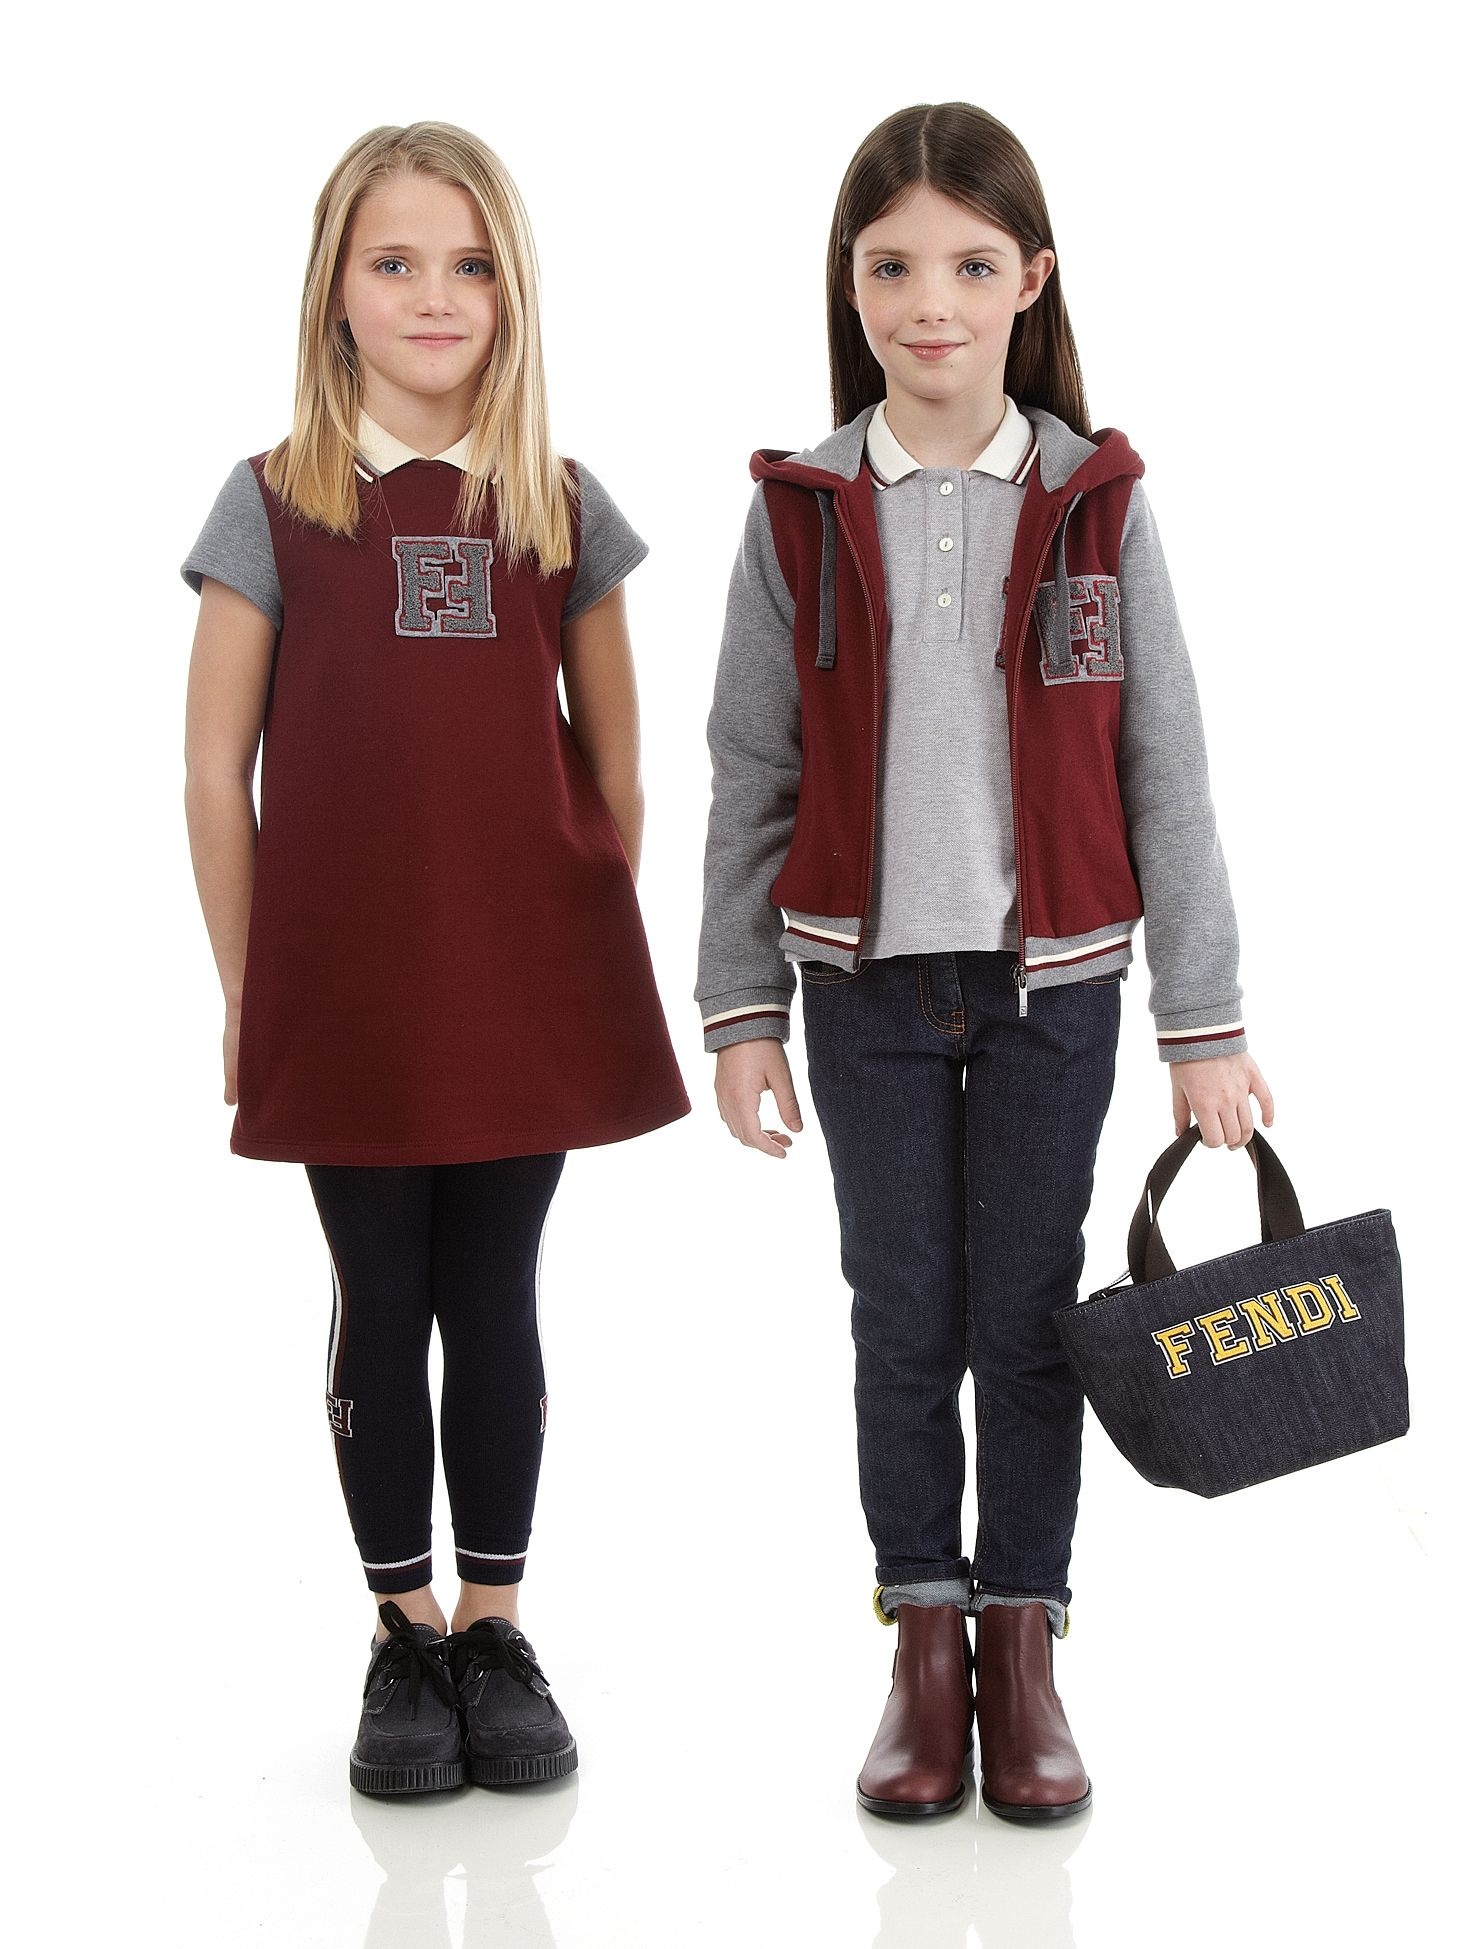 Burgundy and gray cotton jersey dress with FF logo sBlack